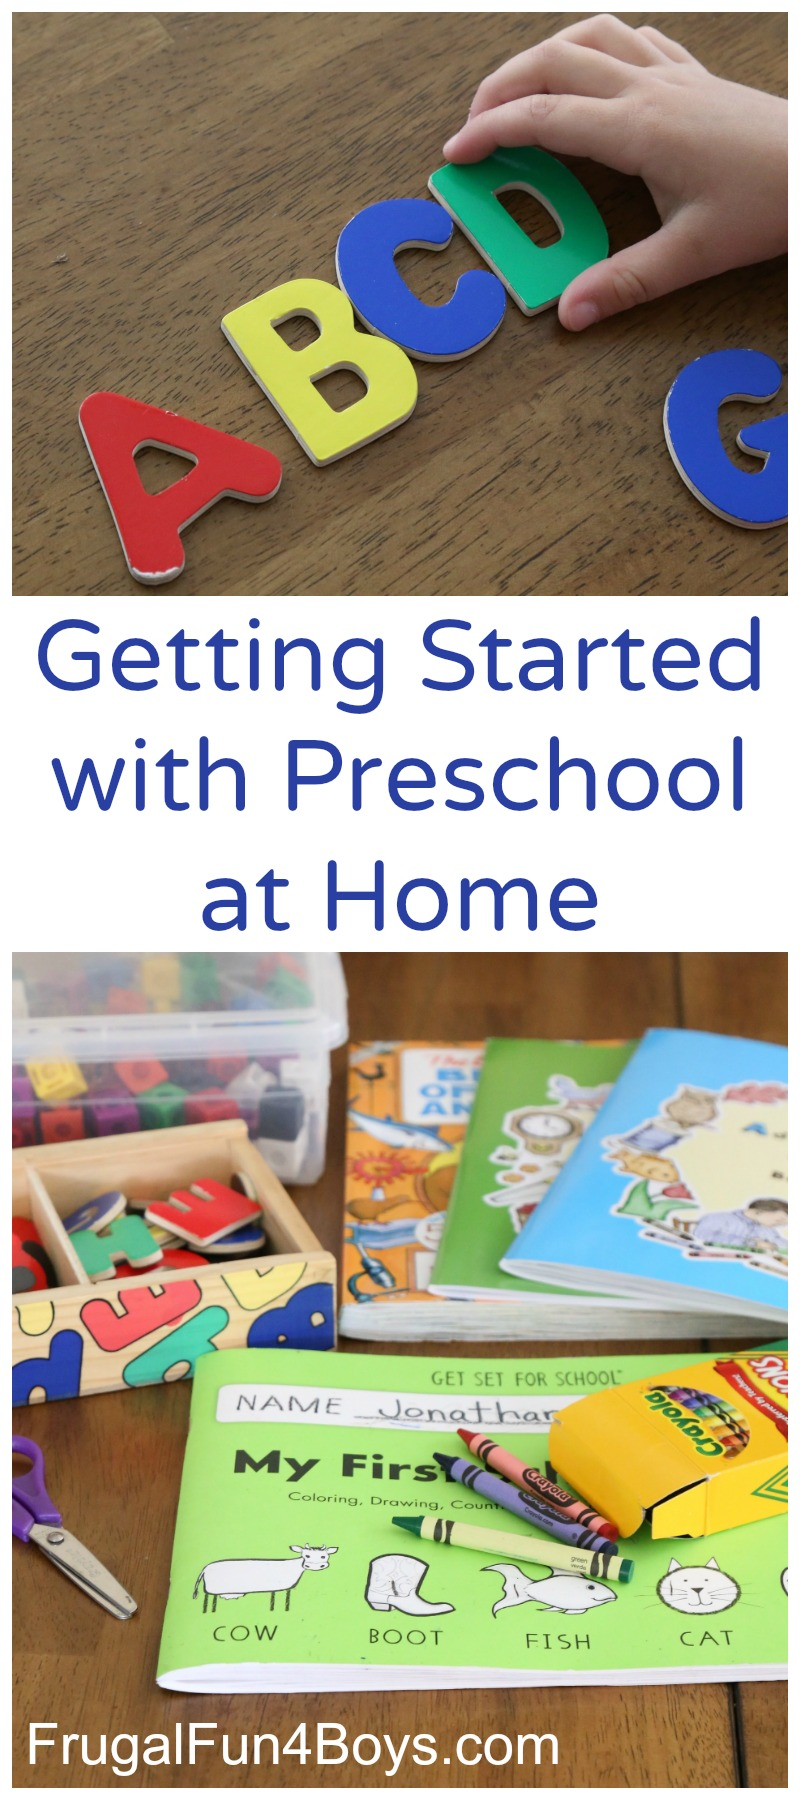 Getting Started with Preschool at Home - What to Teach and Materials to Use